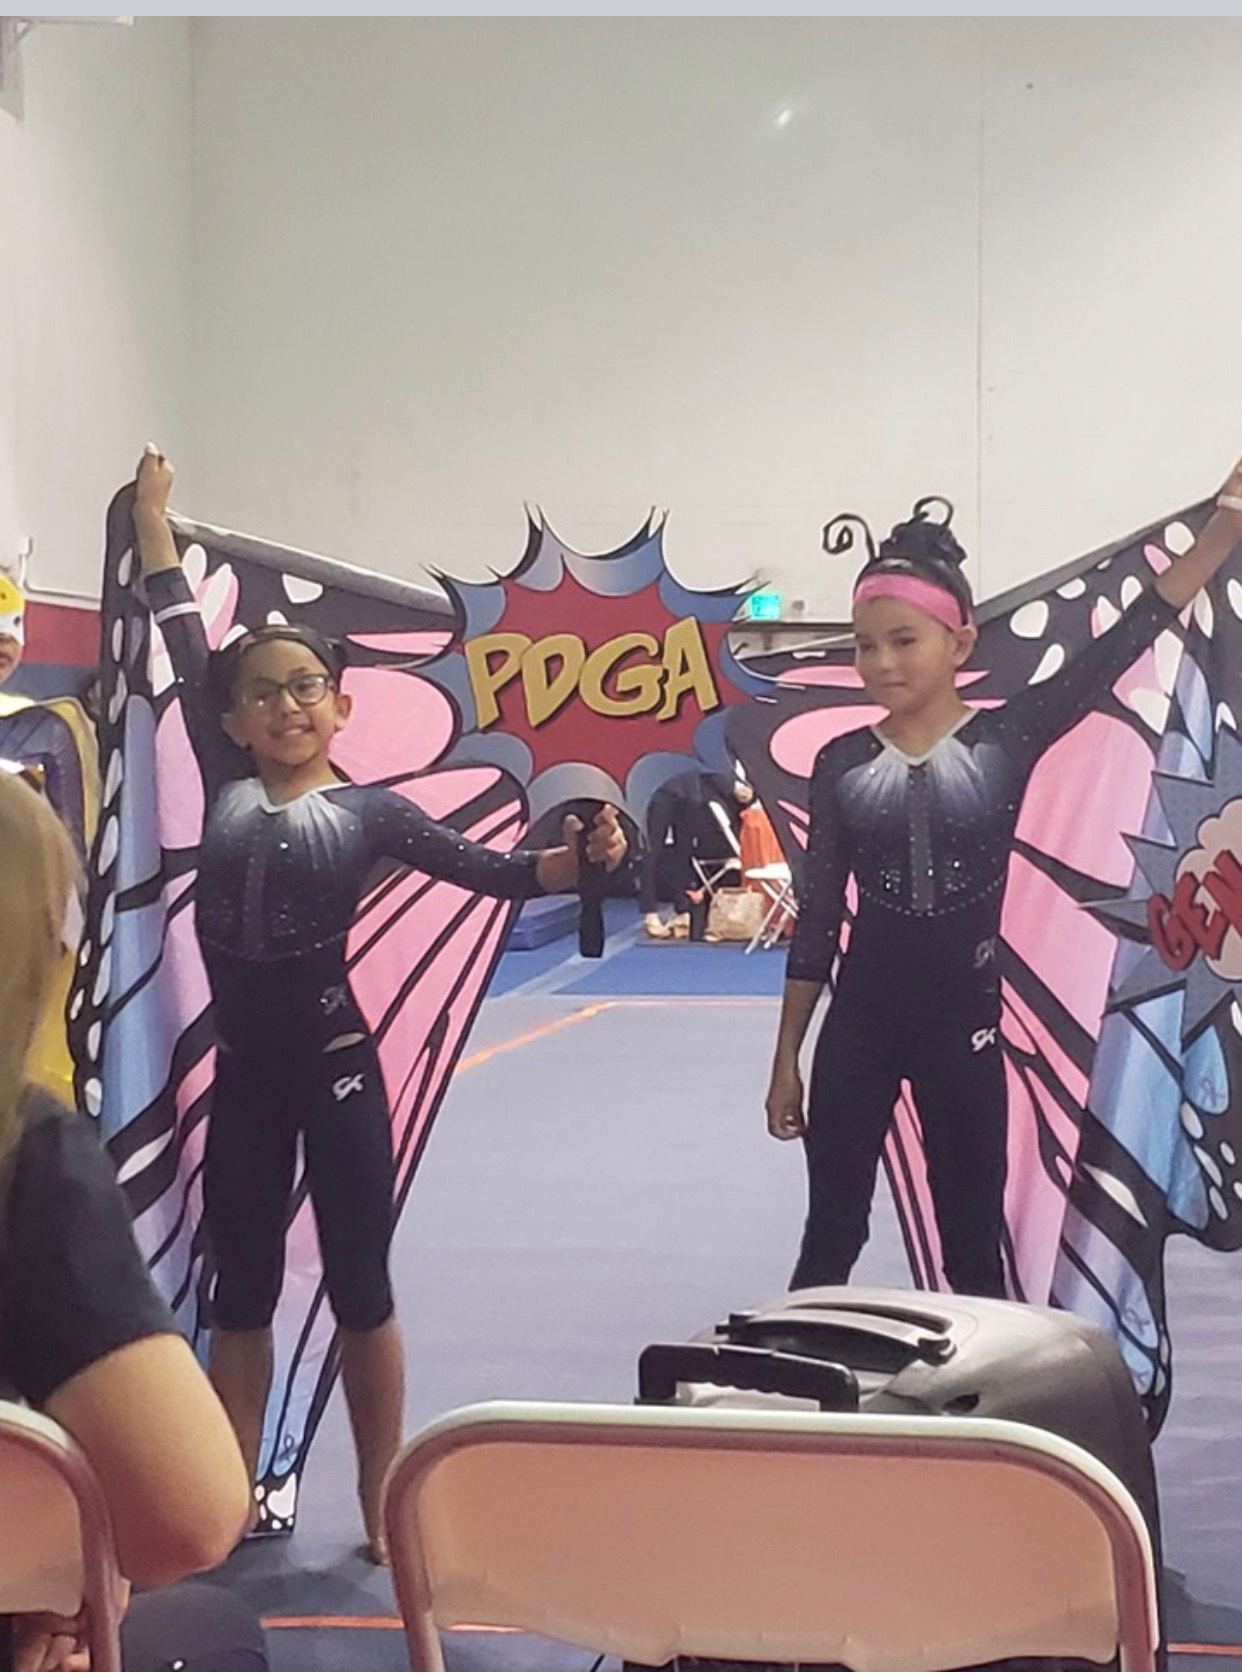 Gymnasts Having Fun